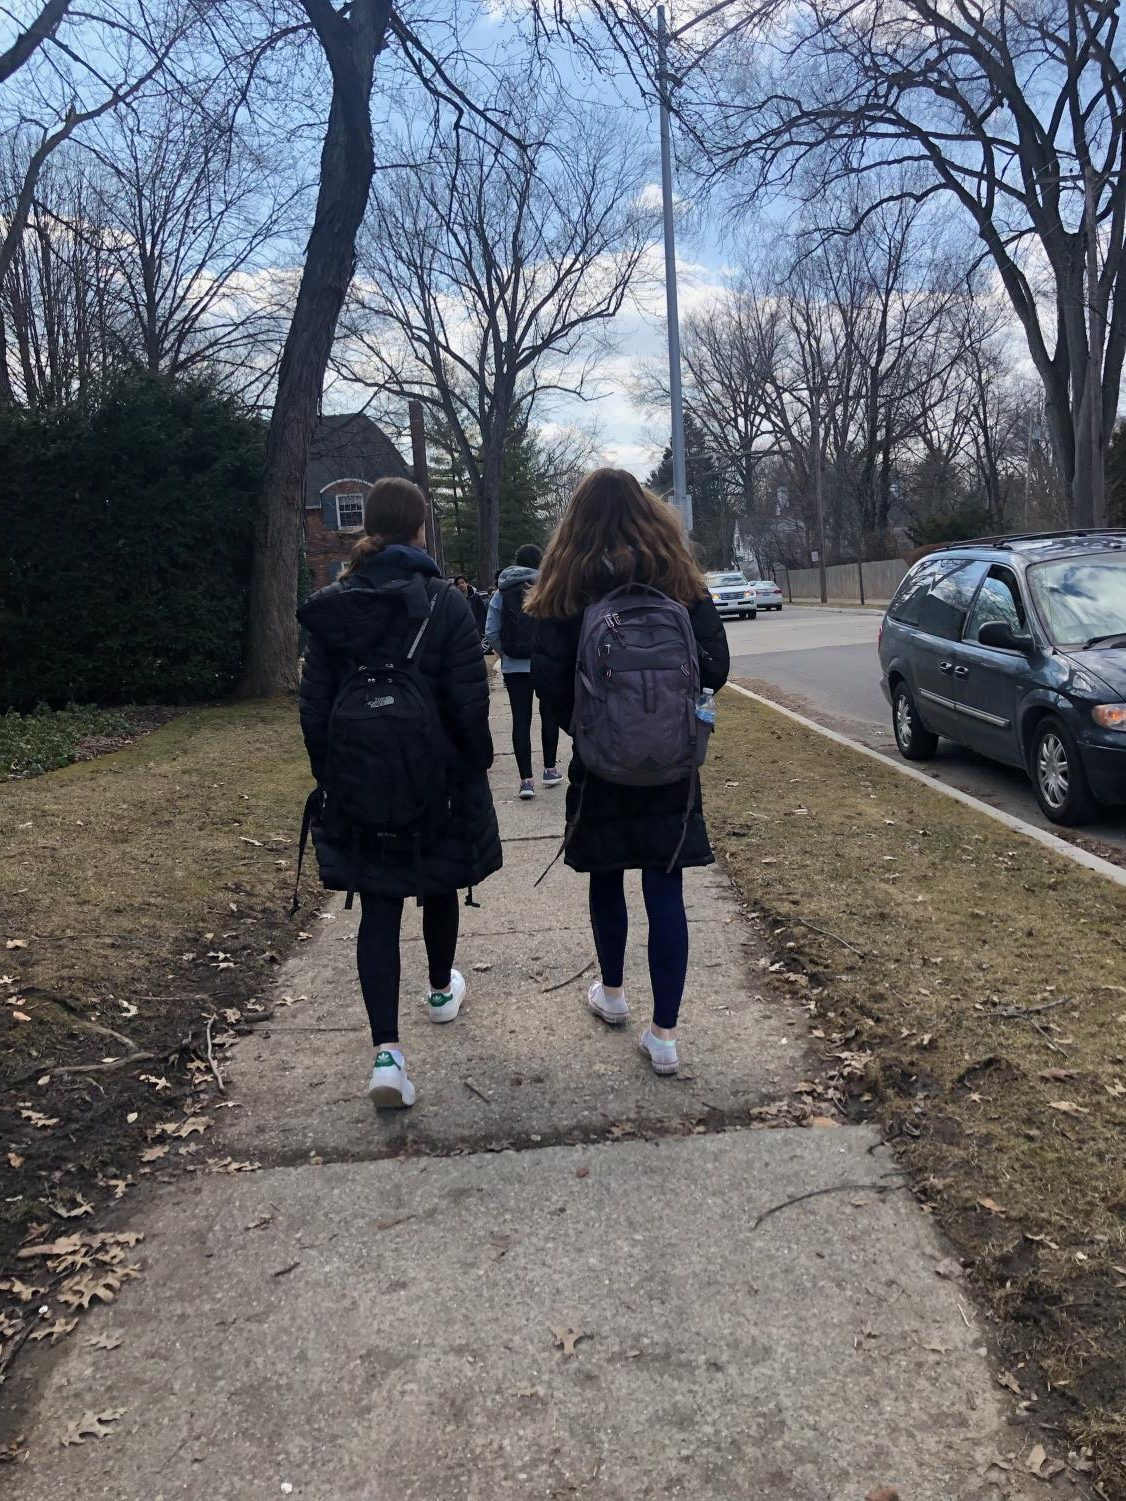 Students walk to school in the cold. Spring starts Mar. 20, something many South students who brave the cold to get to school are looking forward to.